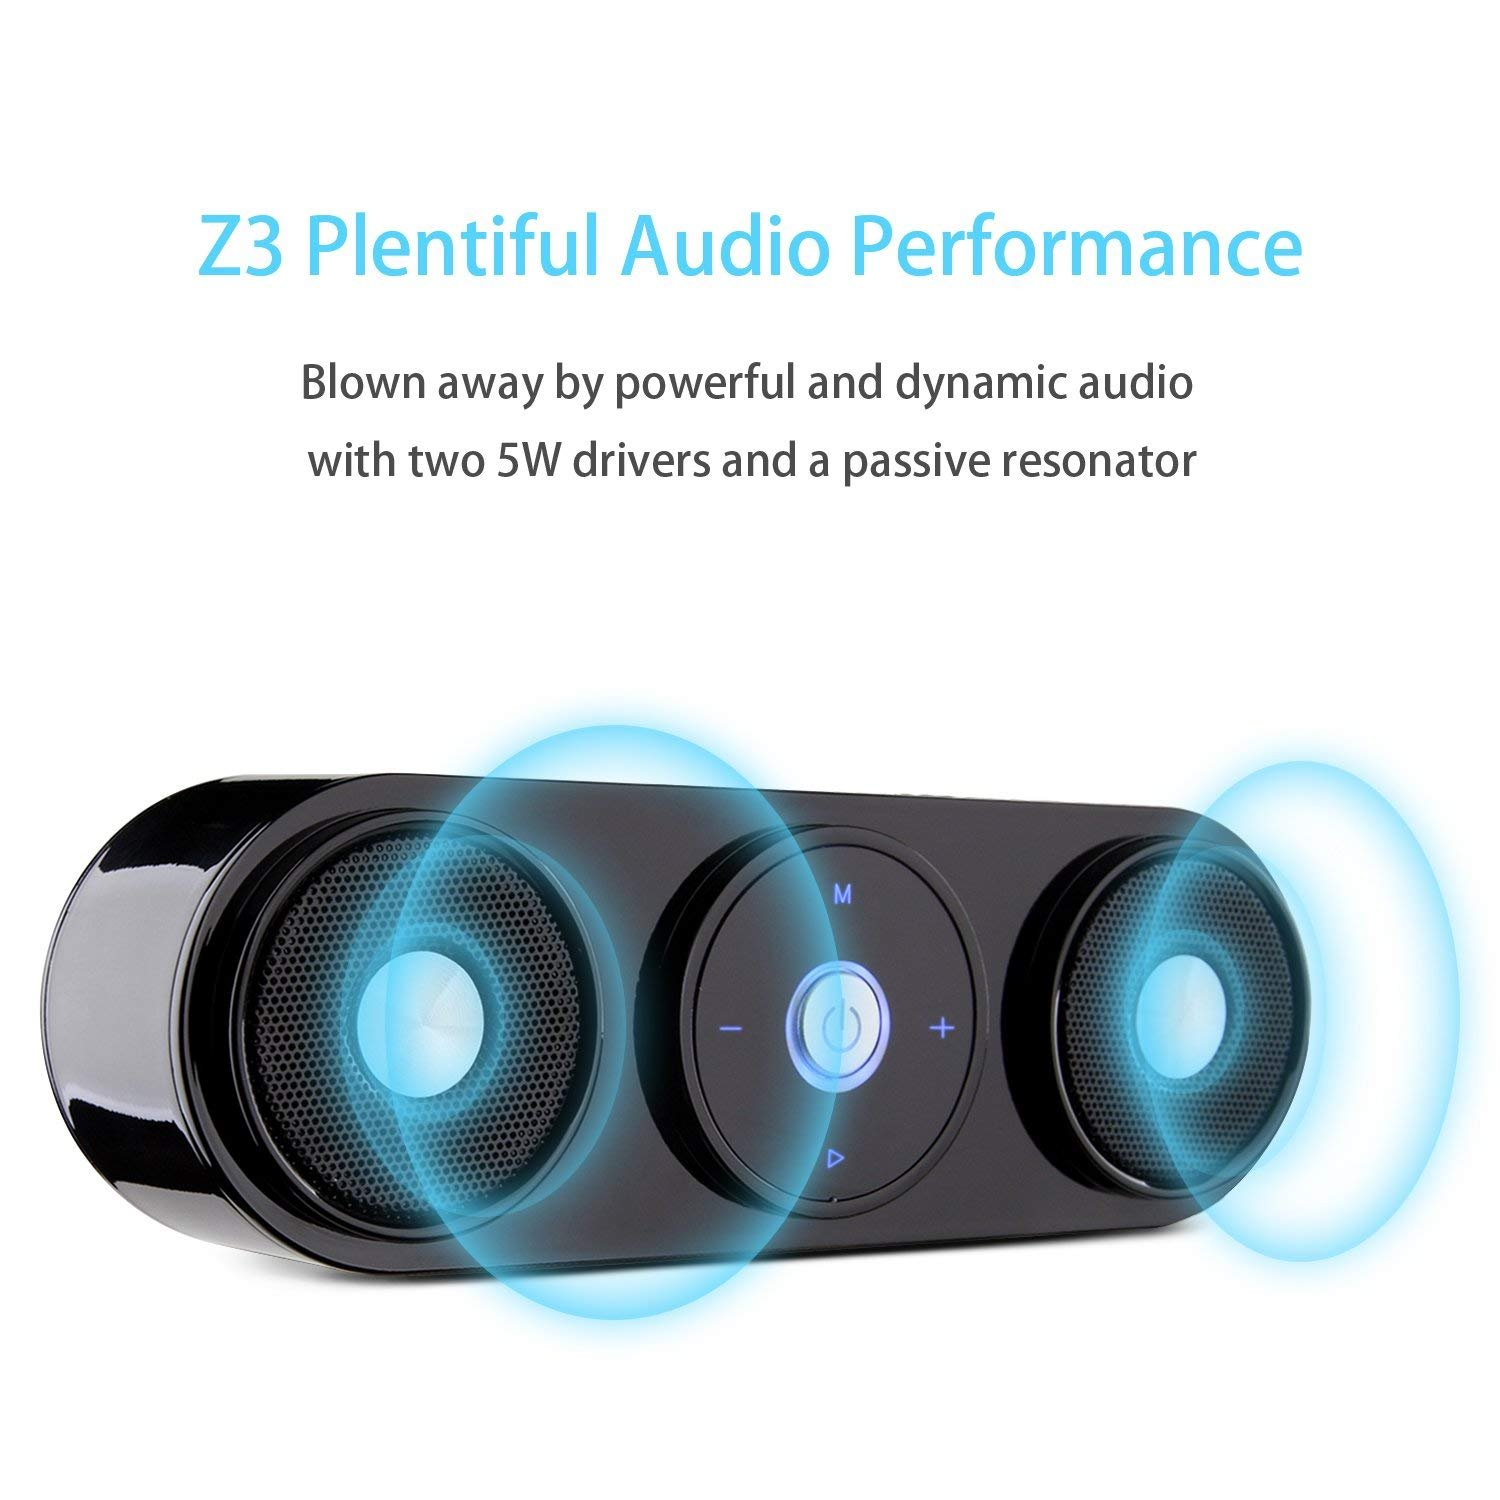 Bluetooth Speakers, ZENBRE Z3 10W Wireless Computer Speakers with 20h Playtime, Portable Speaker with Dual-Driver Enhanced Bass Resonator (Black) by ZENBRE (Image #5)